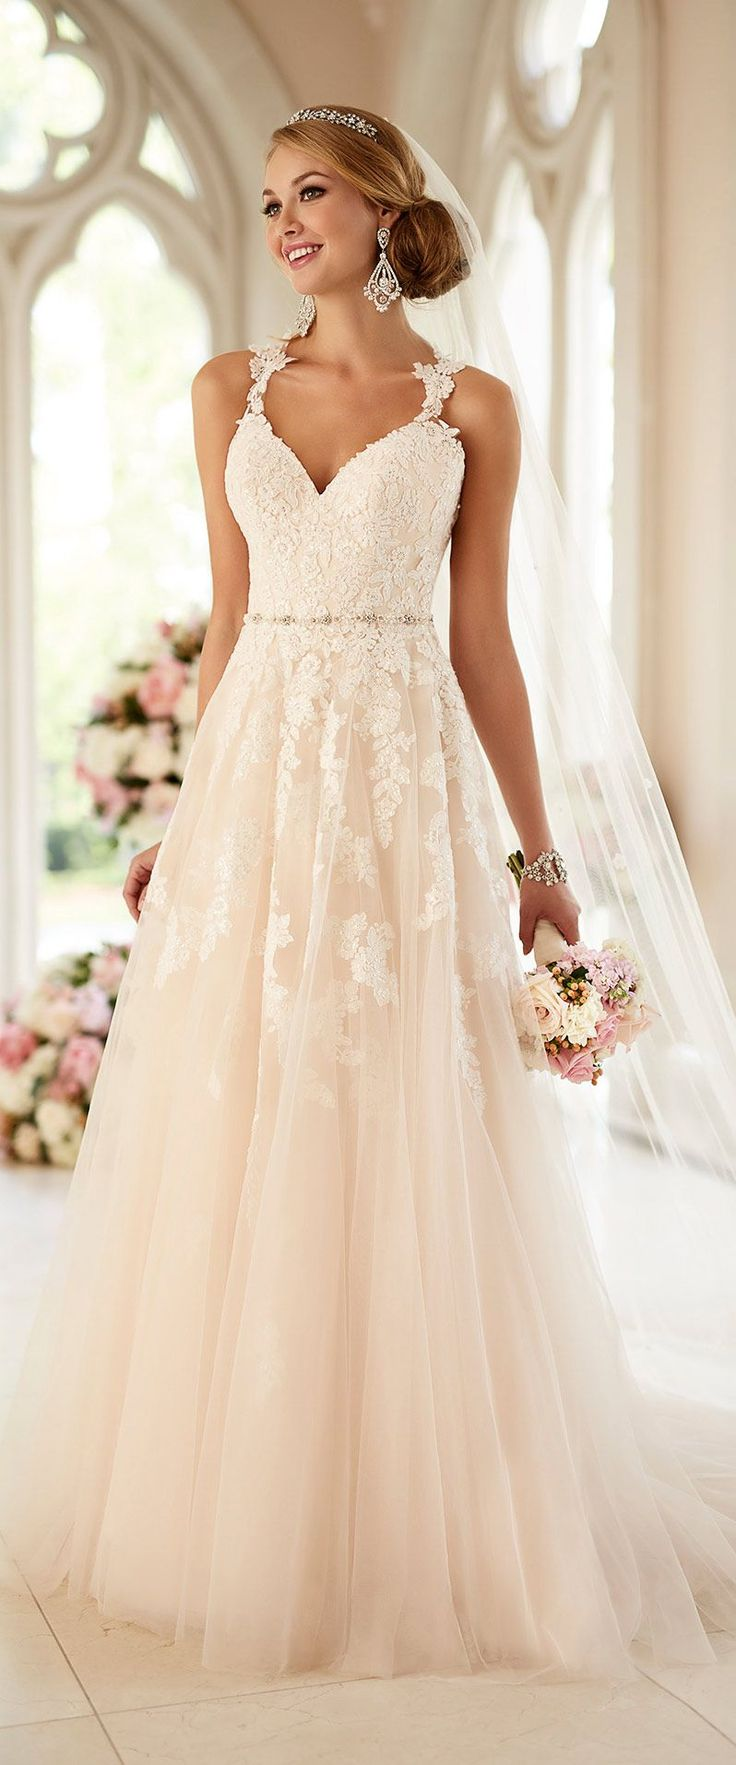 Unique wedding dress alternative wedding dress alternate wedding - Cool Wedding Dresses Lace Best Photos